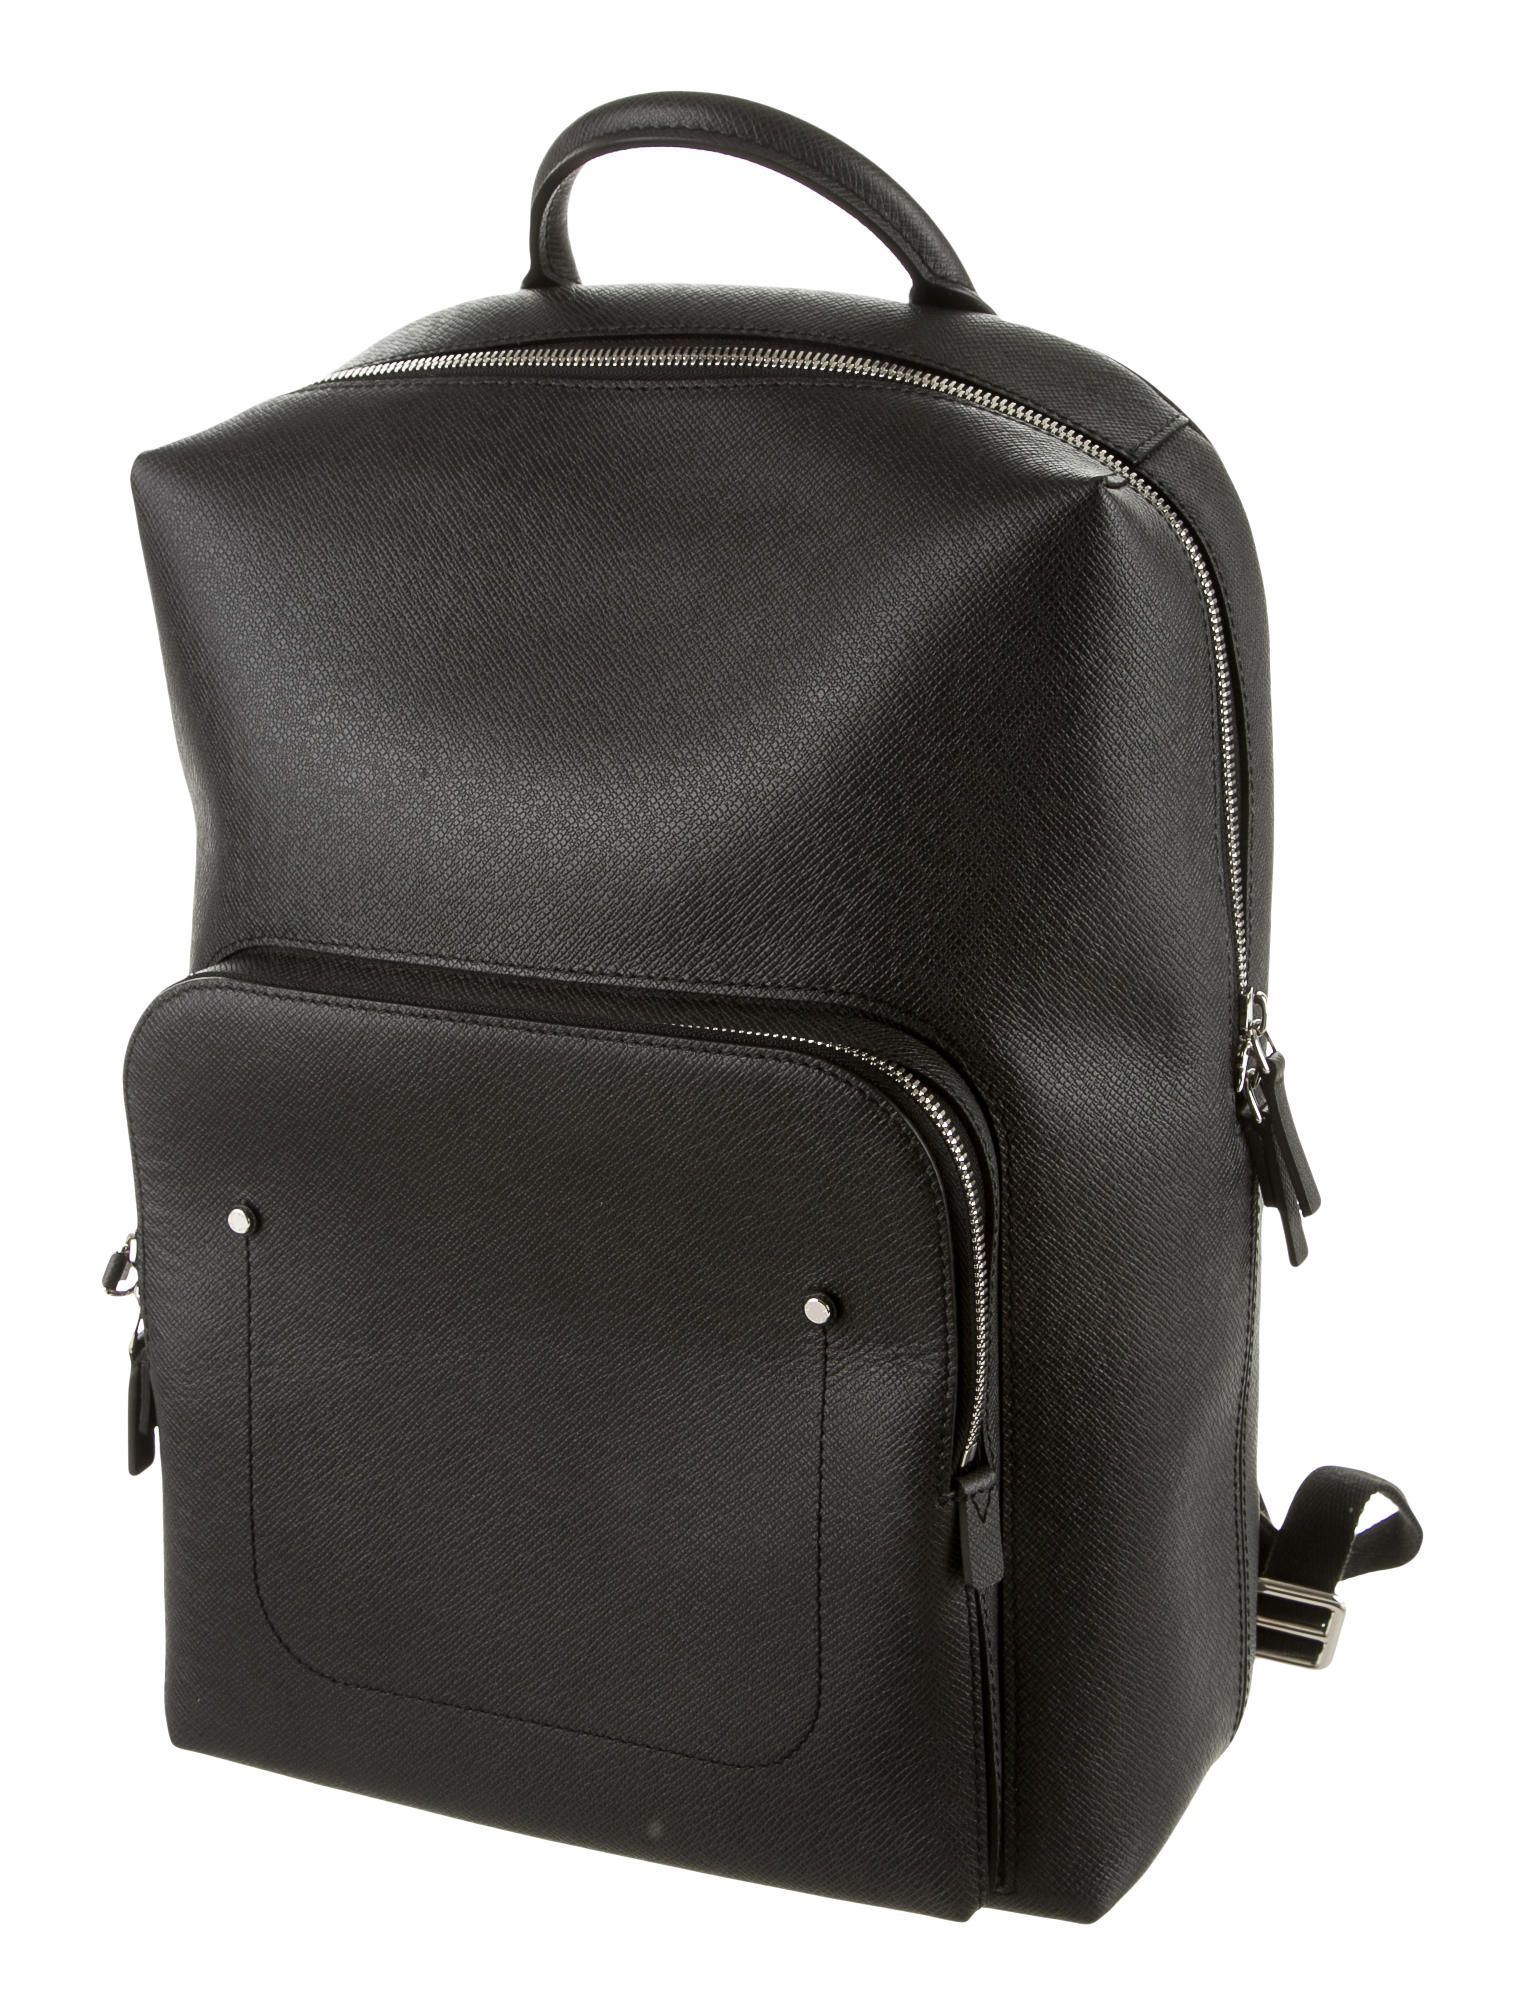 c9919b4ee Men's black Taiga leather Louis Vuitton Grigori backpack with silver-tone  hardware, zip pocket